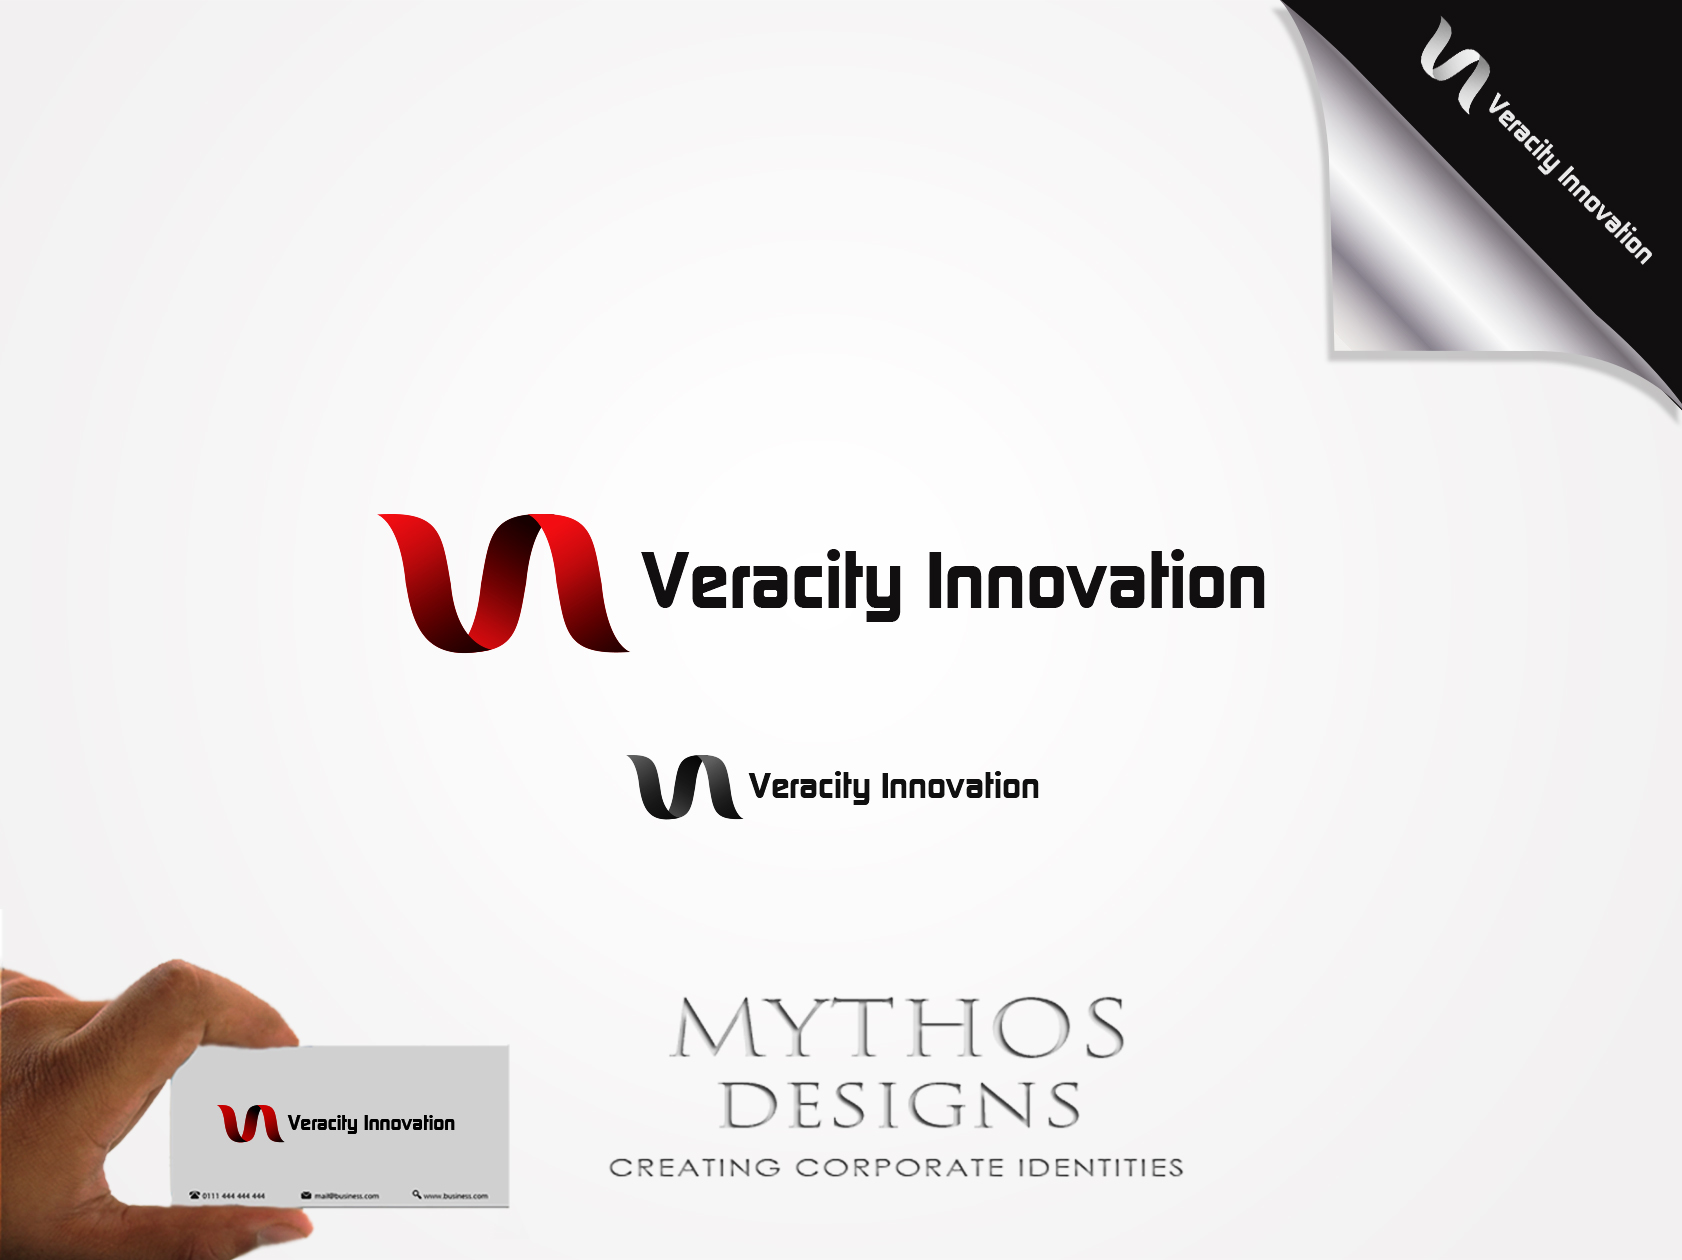 Logo Design by Mythos Designs - Entry No. 254 in the Logo Design Contest Creative Logo Design for Veracity Innovation, LLC.